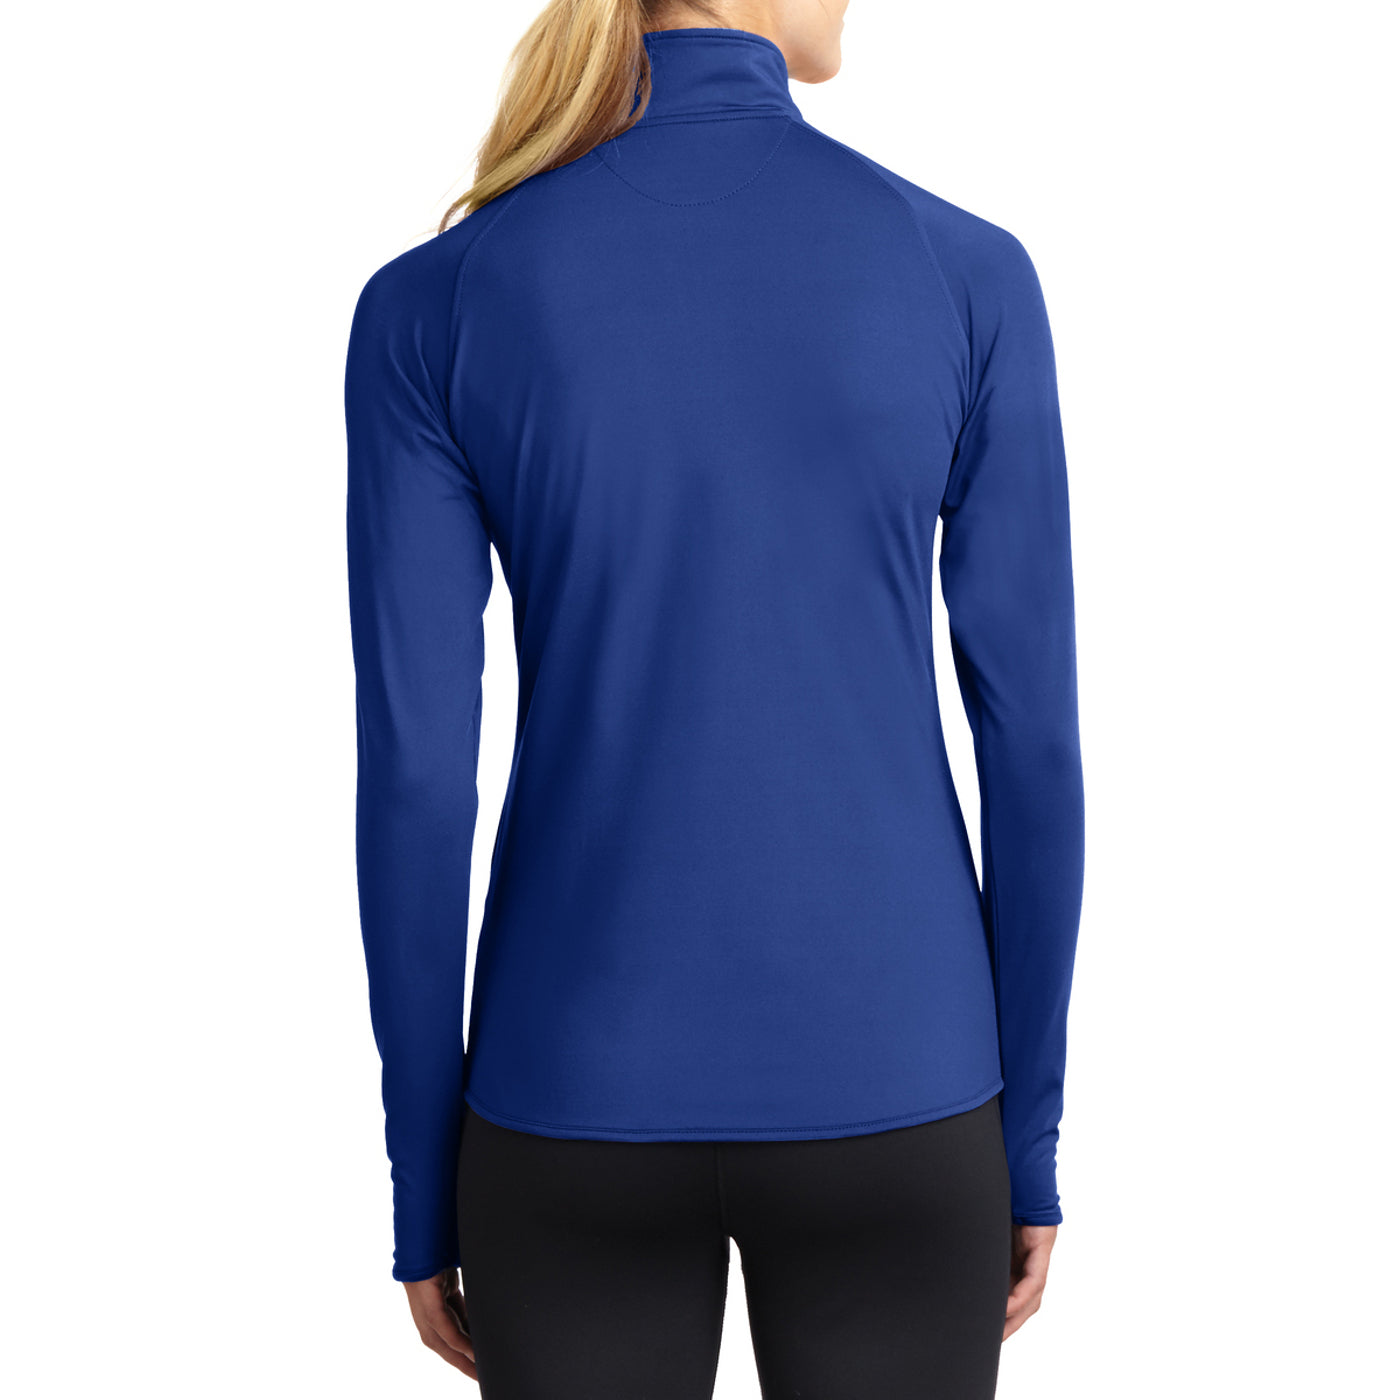 Women's Sport Wick Stretch 1/2 Zip Pullover - True Royal - Back